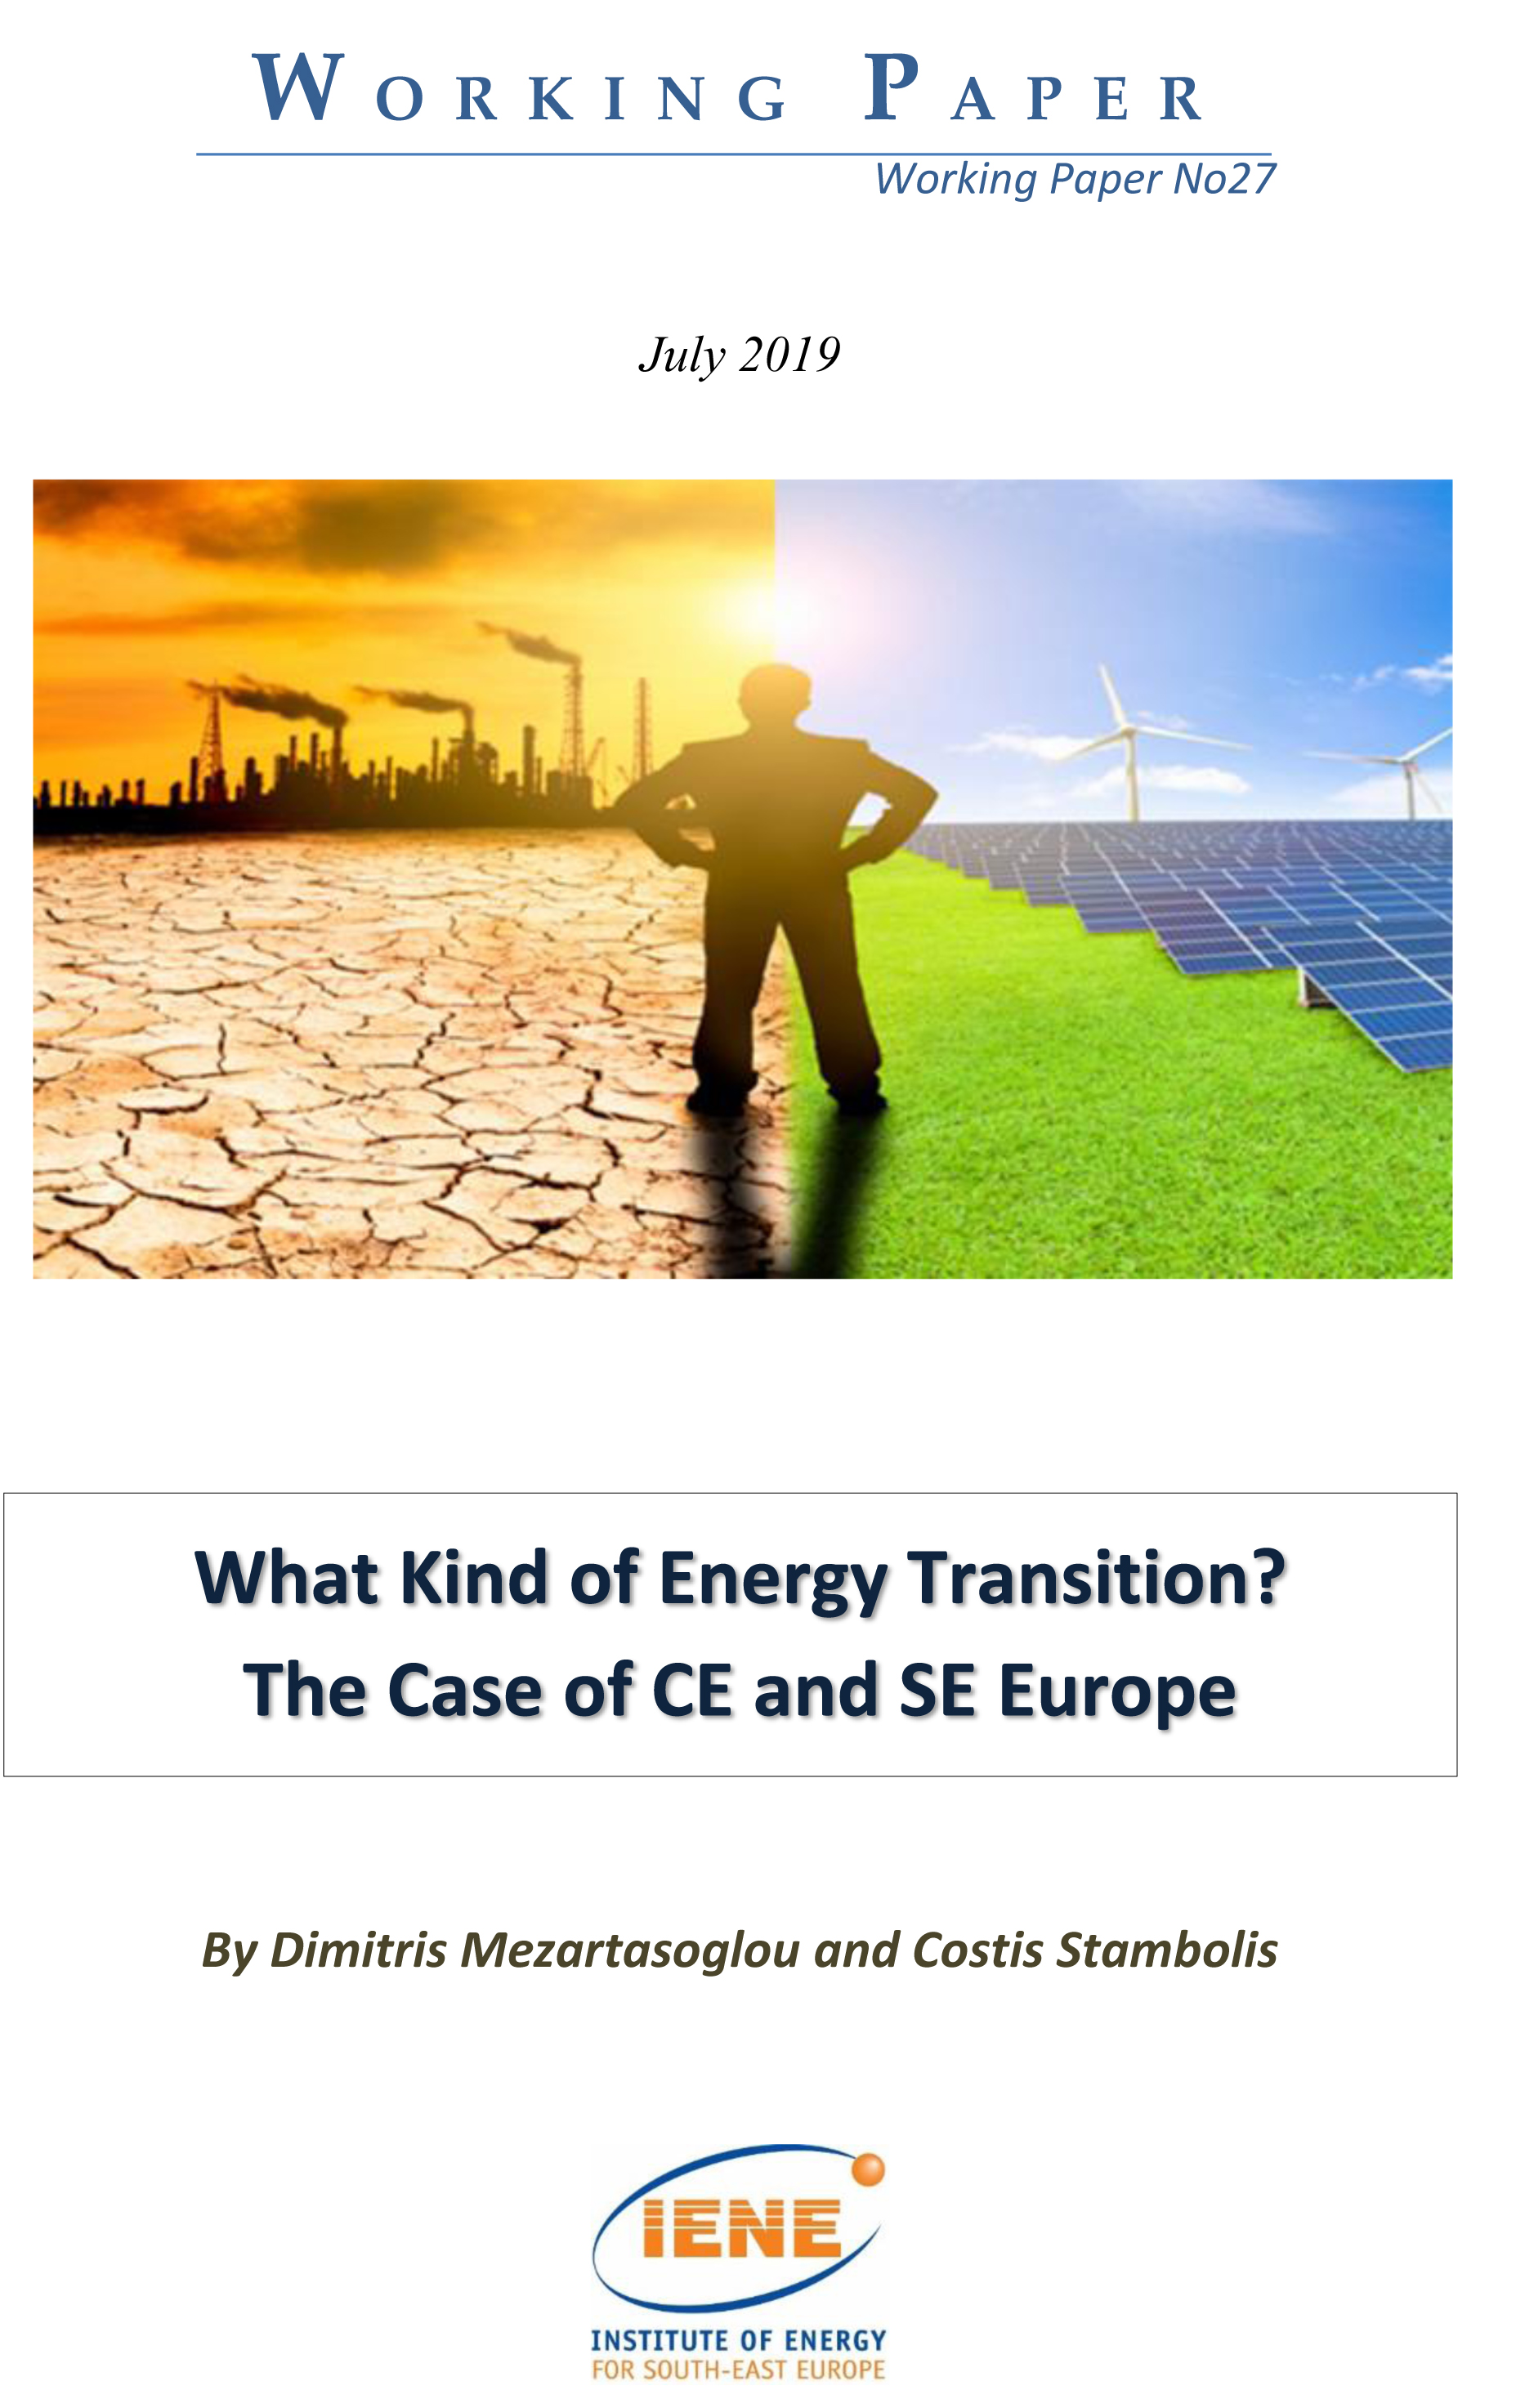 WP 27 - What Kind of Energy Transition? The Case of CE and SE Europe